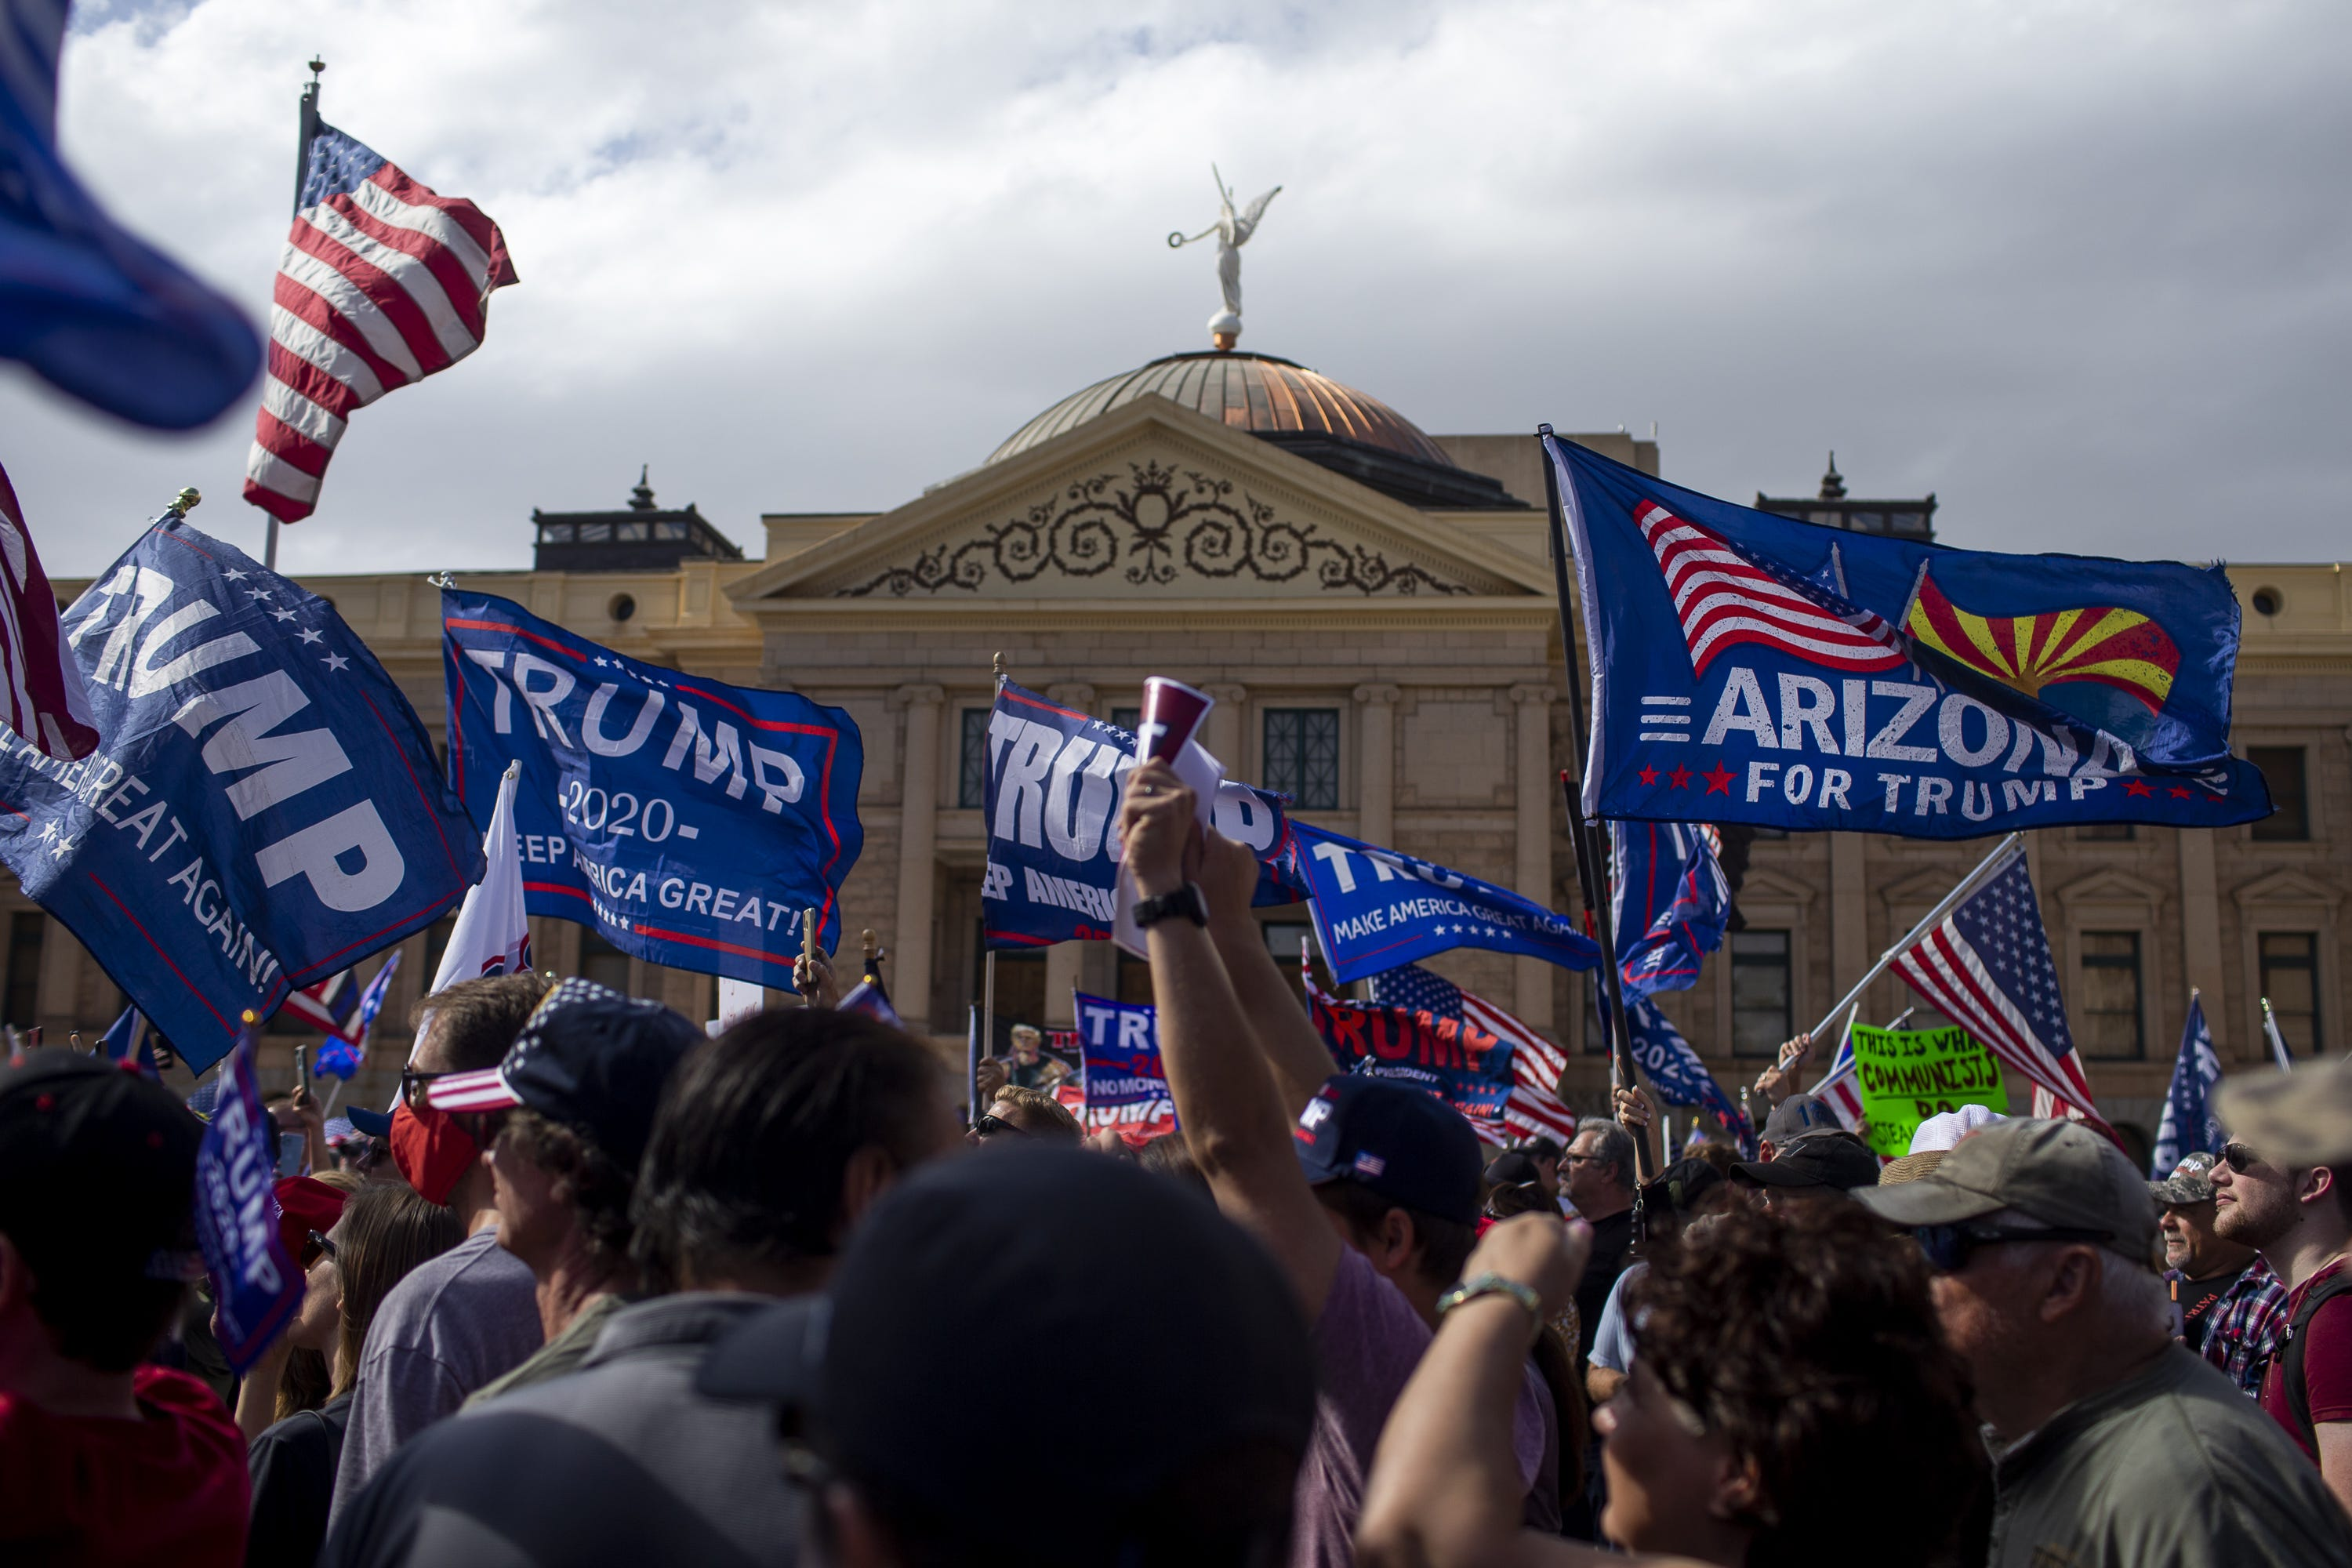 2 arrested on suspicion of trespassing at Arizona Capitol election protest